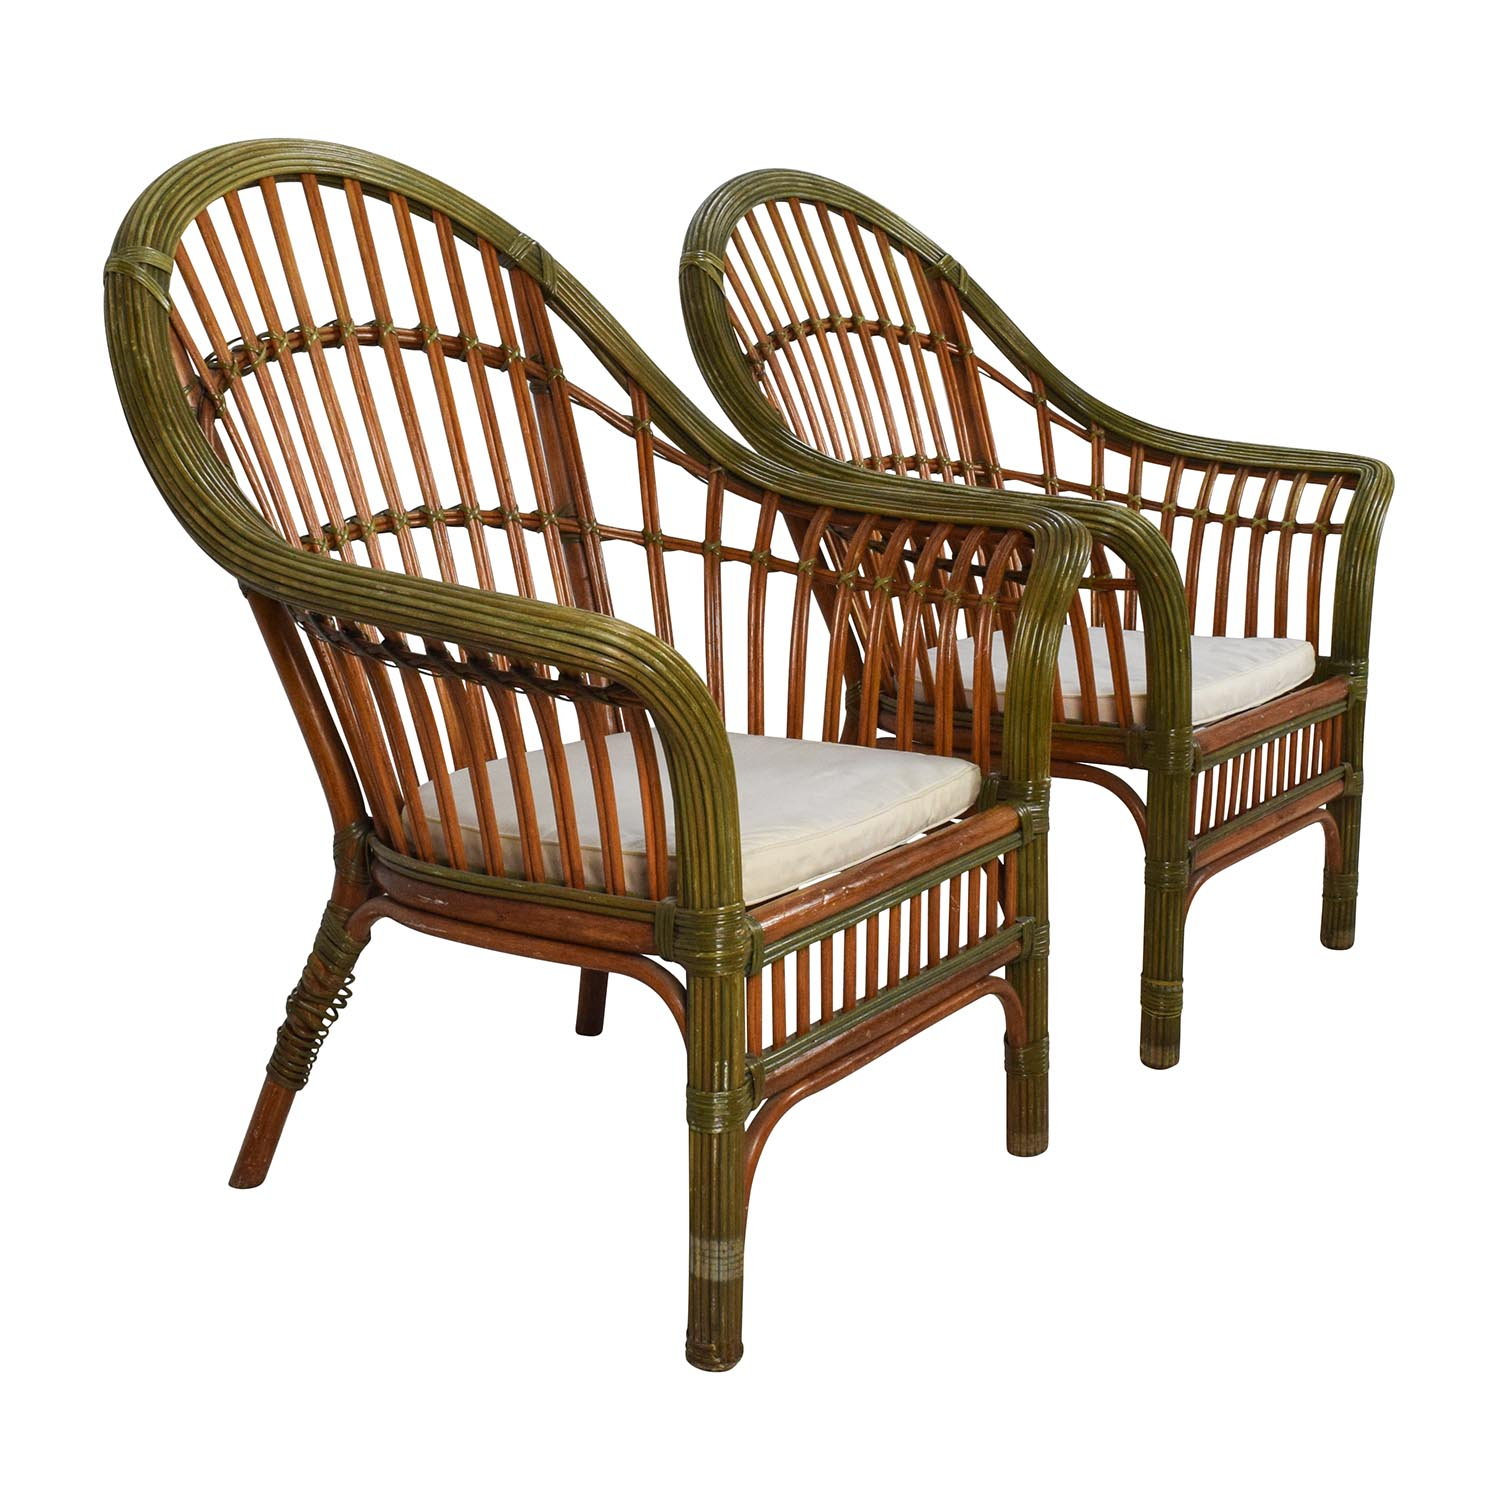 Pair Of Wicker Arm Chairs With Cushions